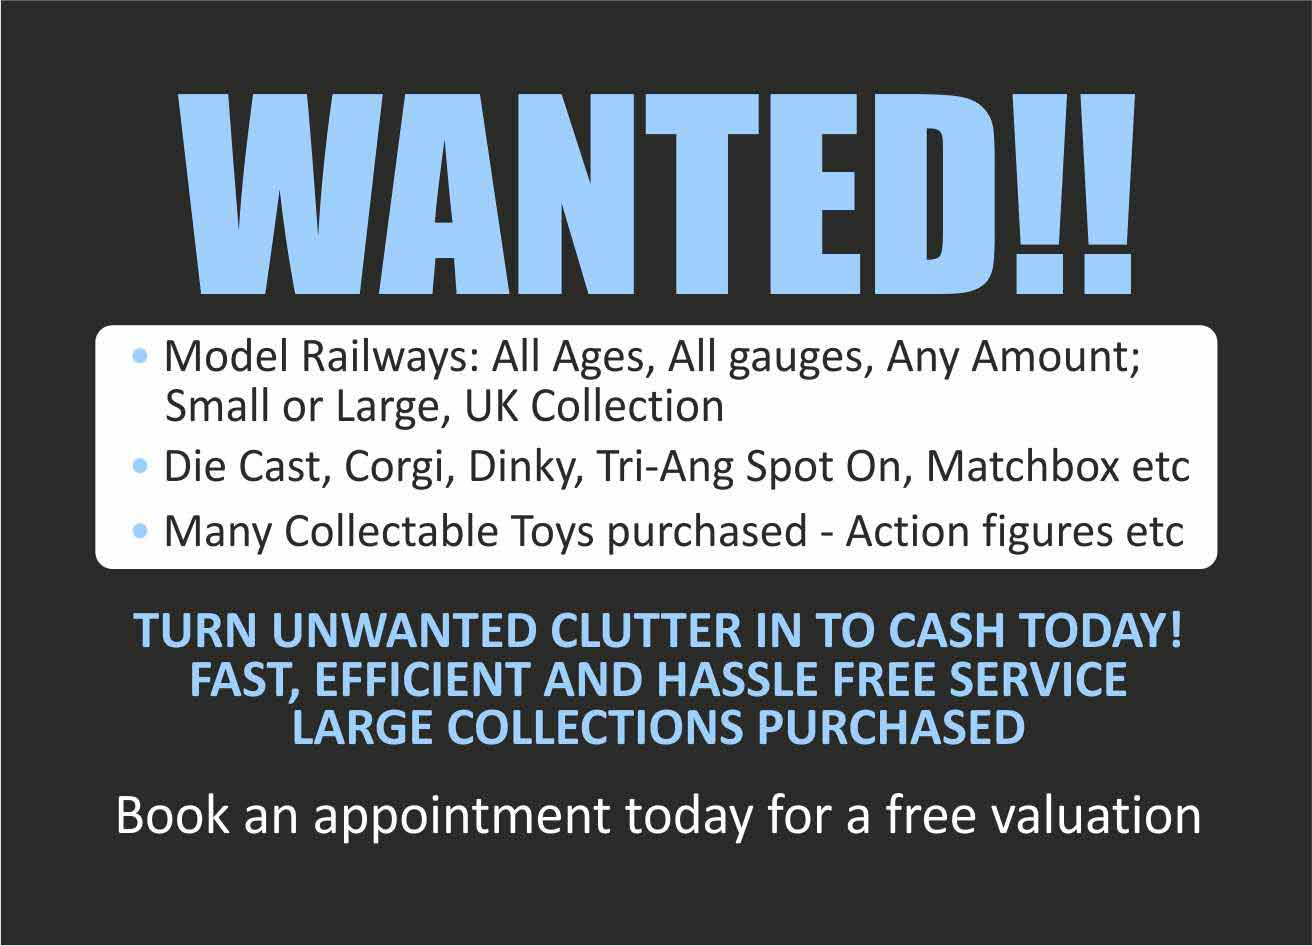 holdercollectables co uk - Model Railways Wanted